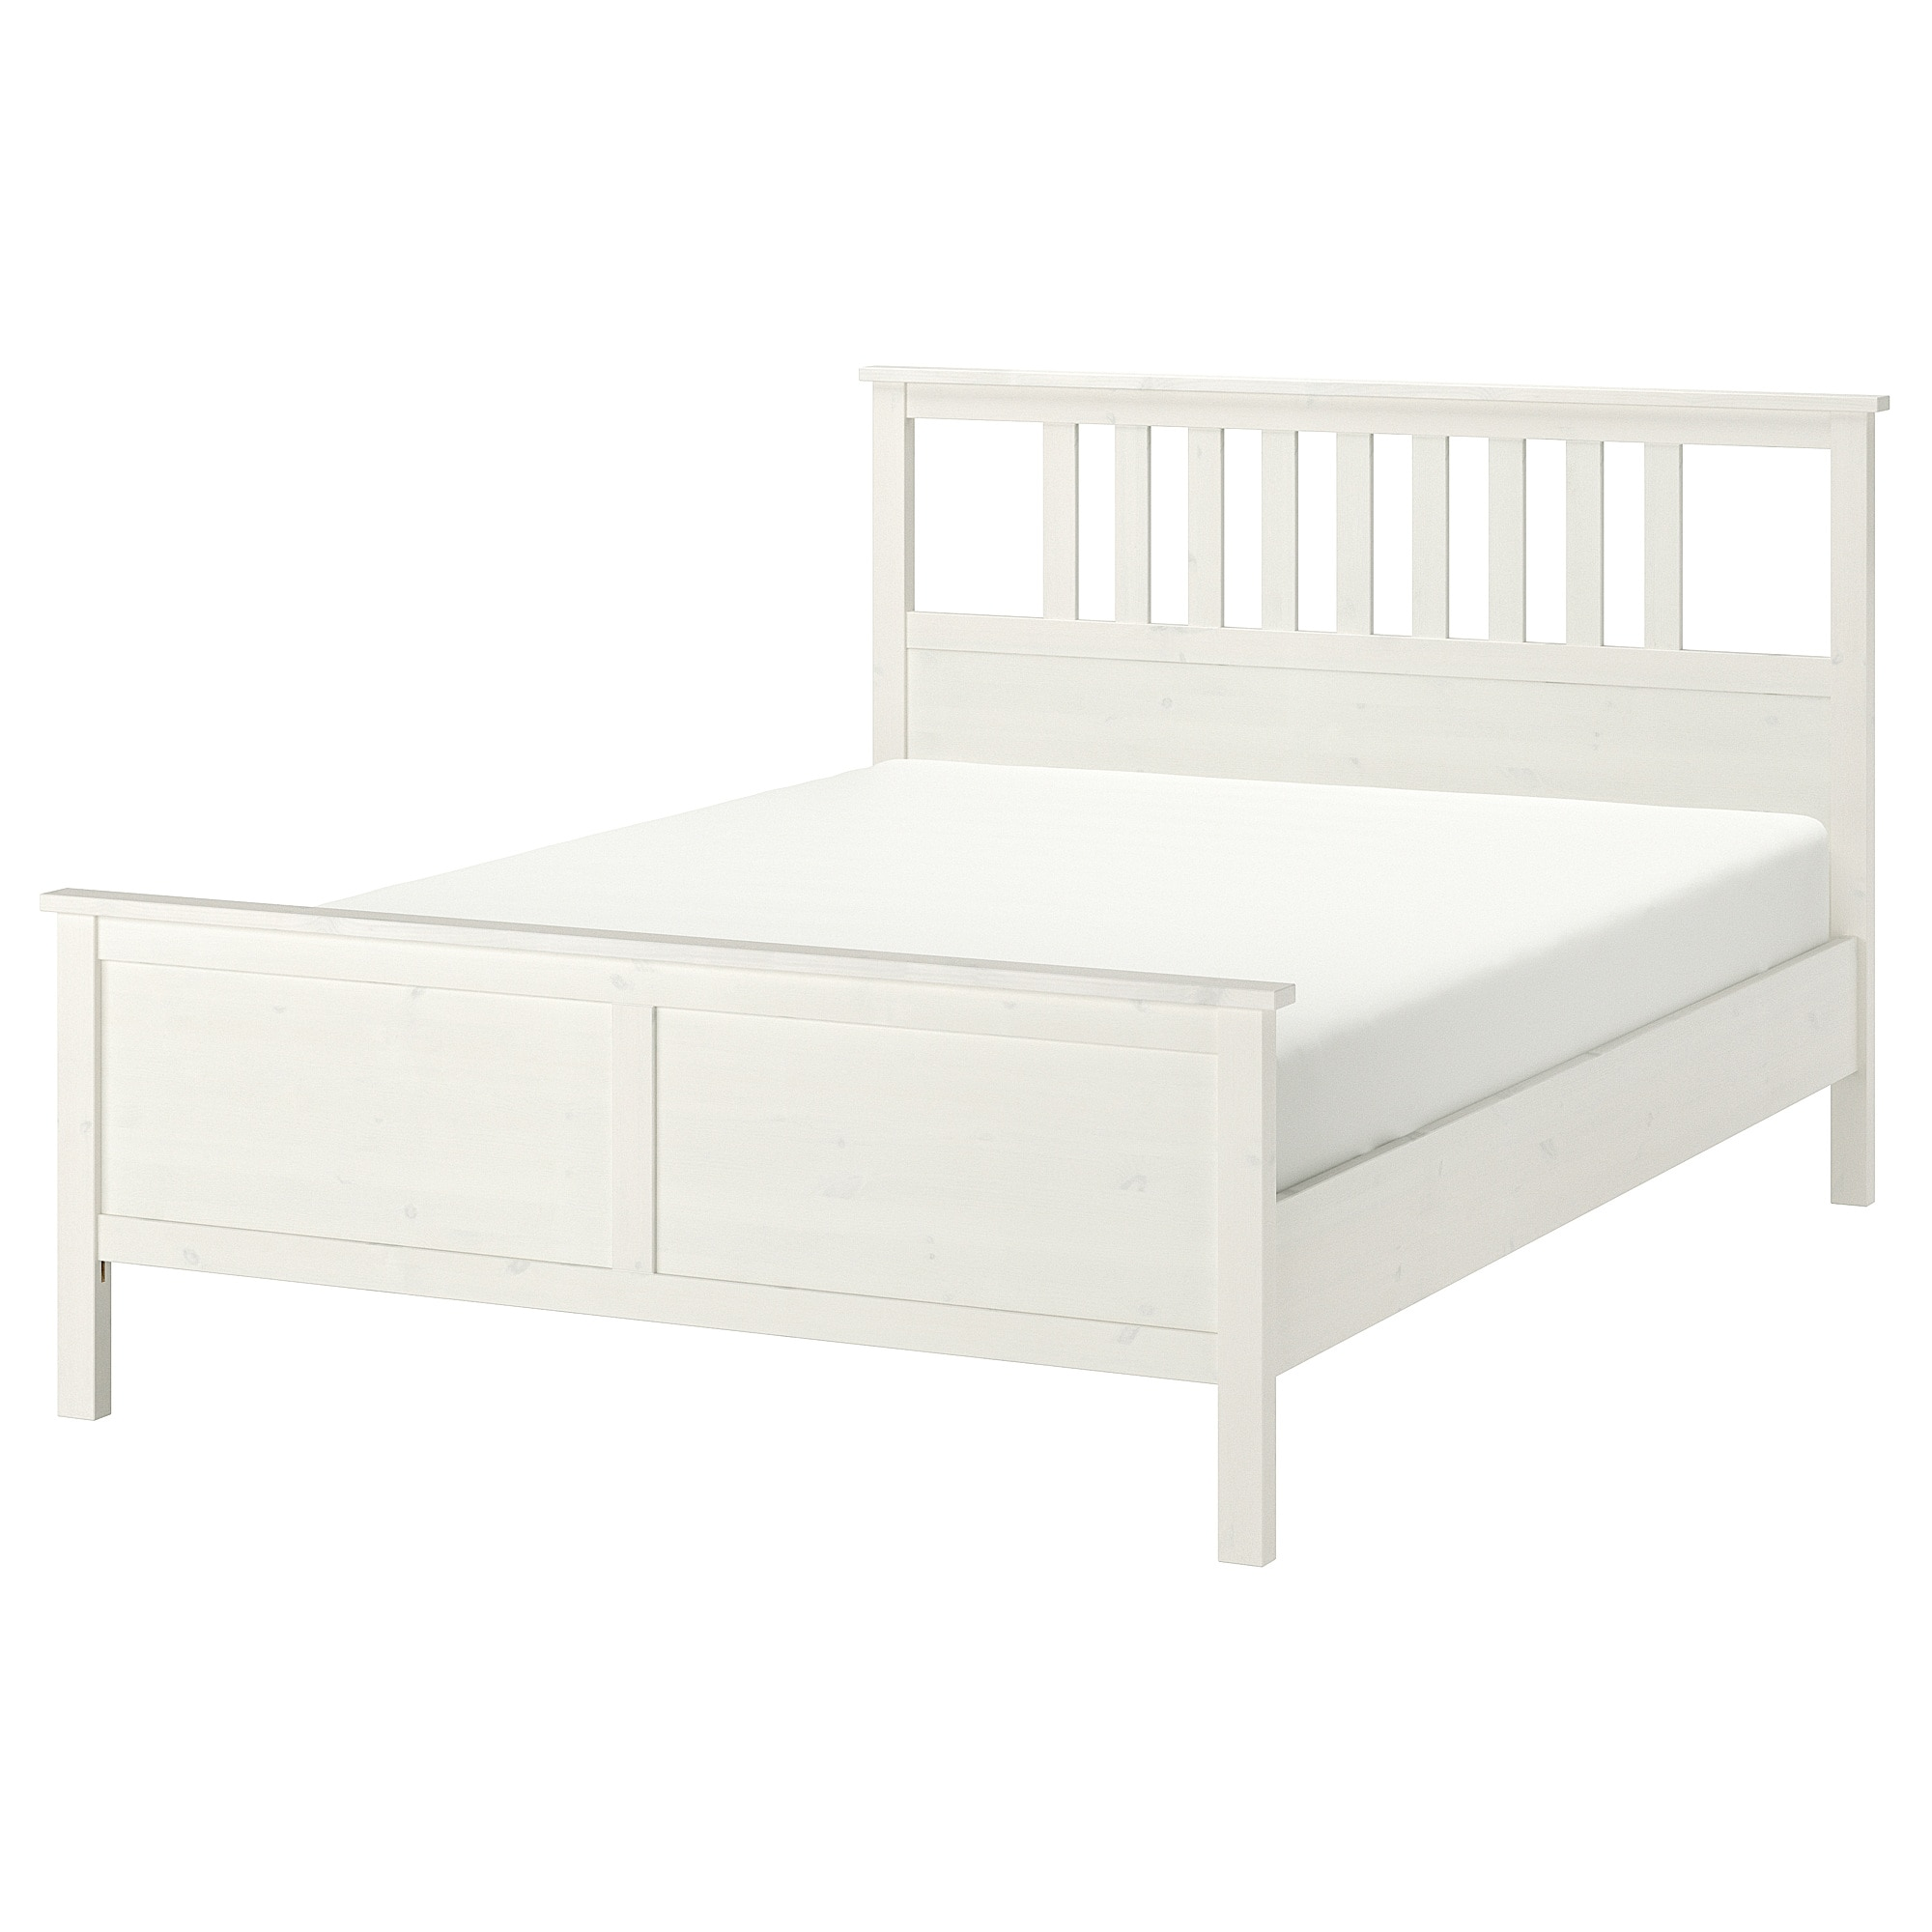 Delicieux Bed Frame HEMNES White Stain, Luröy